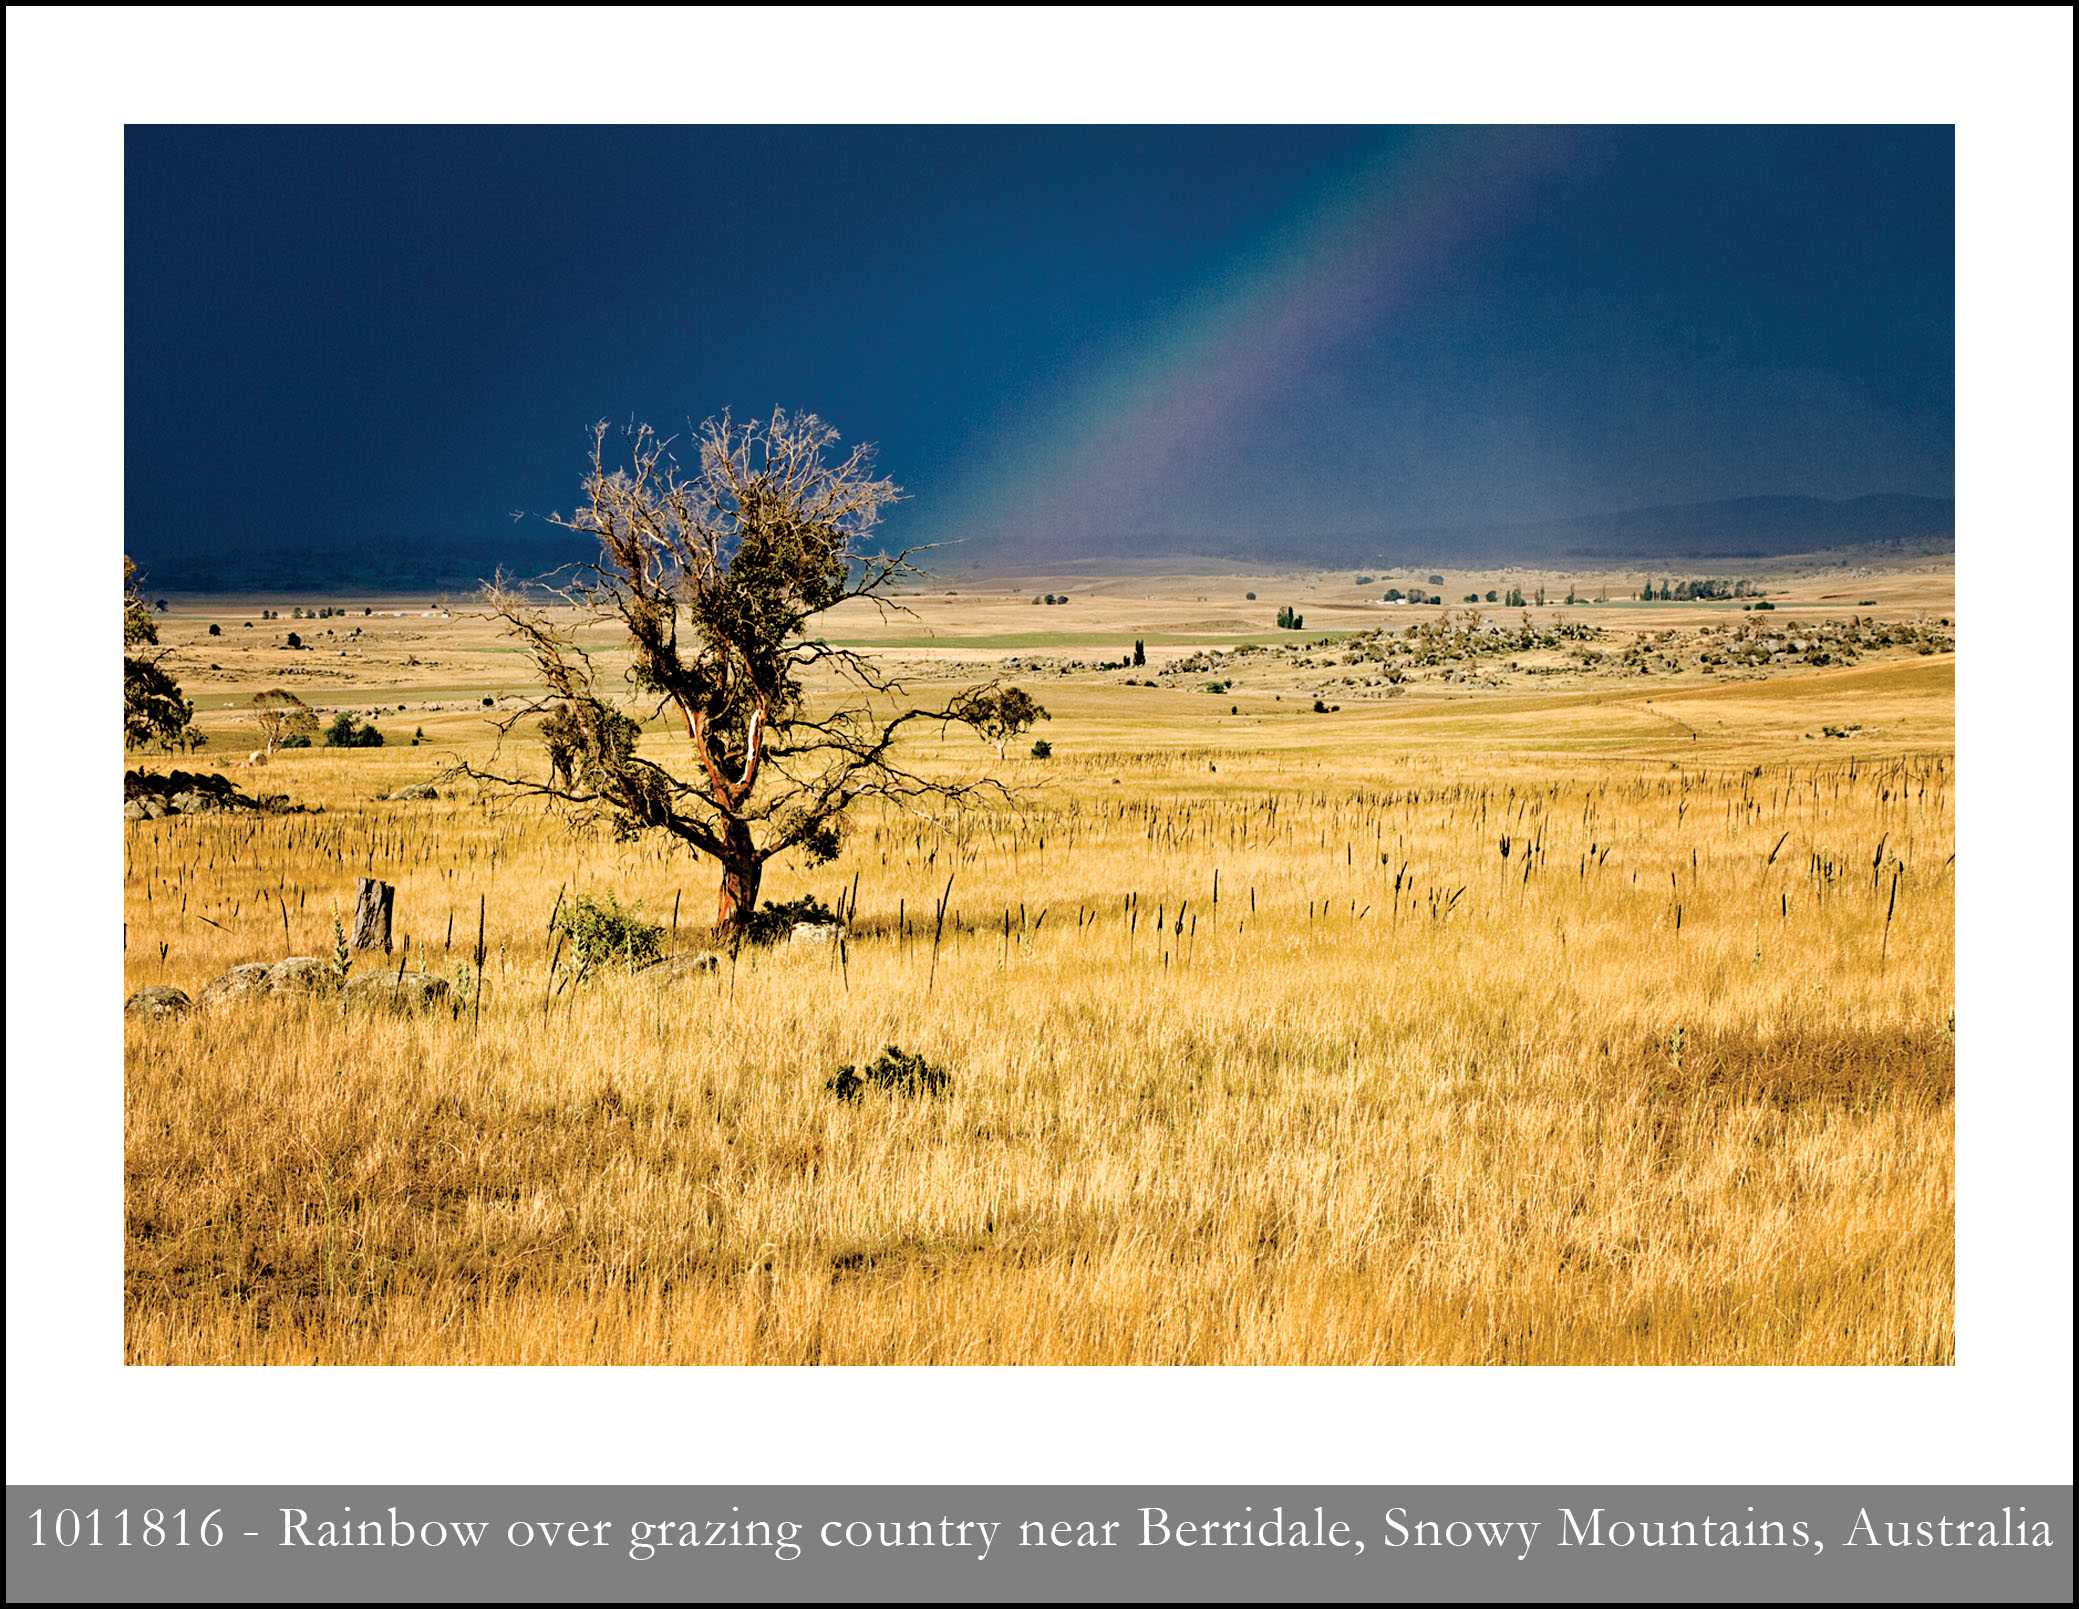 Australia: Grazing country near Berridale, New South Wales with